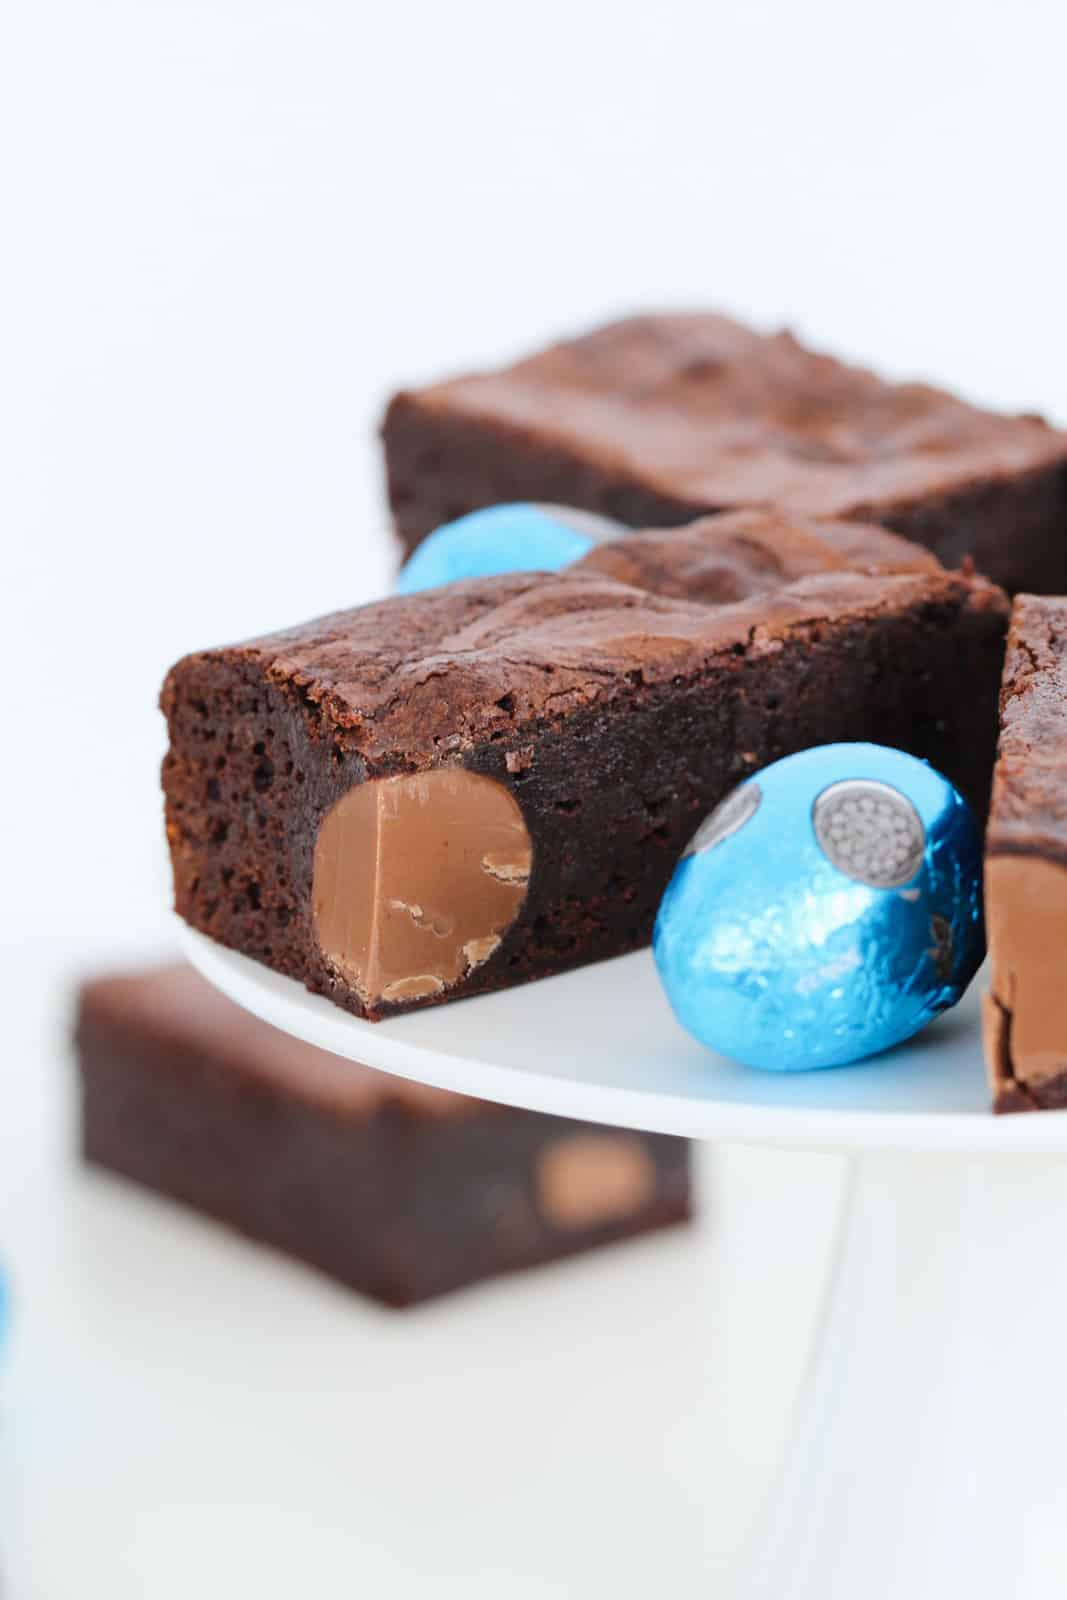 Pieces of Easter egg brownie slice on a white cake stand.